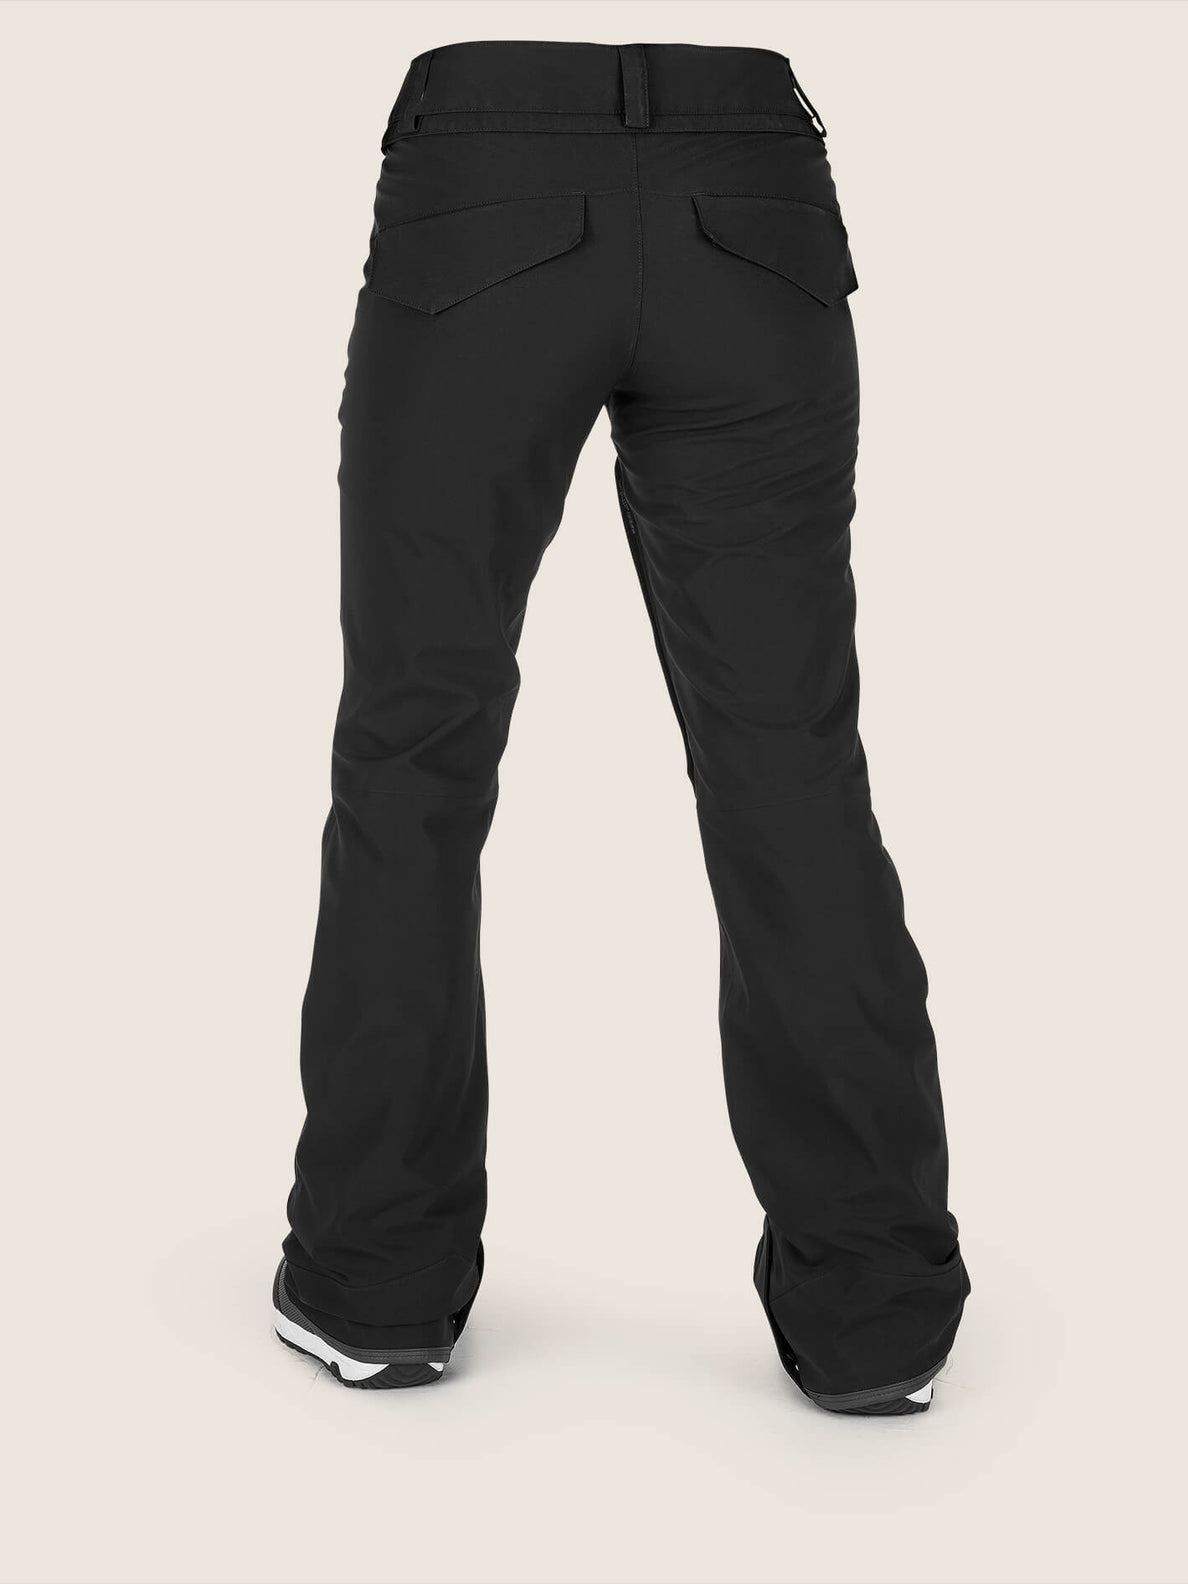 Flor Stretch Gore-tex Pant In Black, Back View